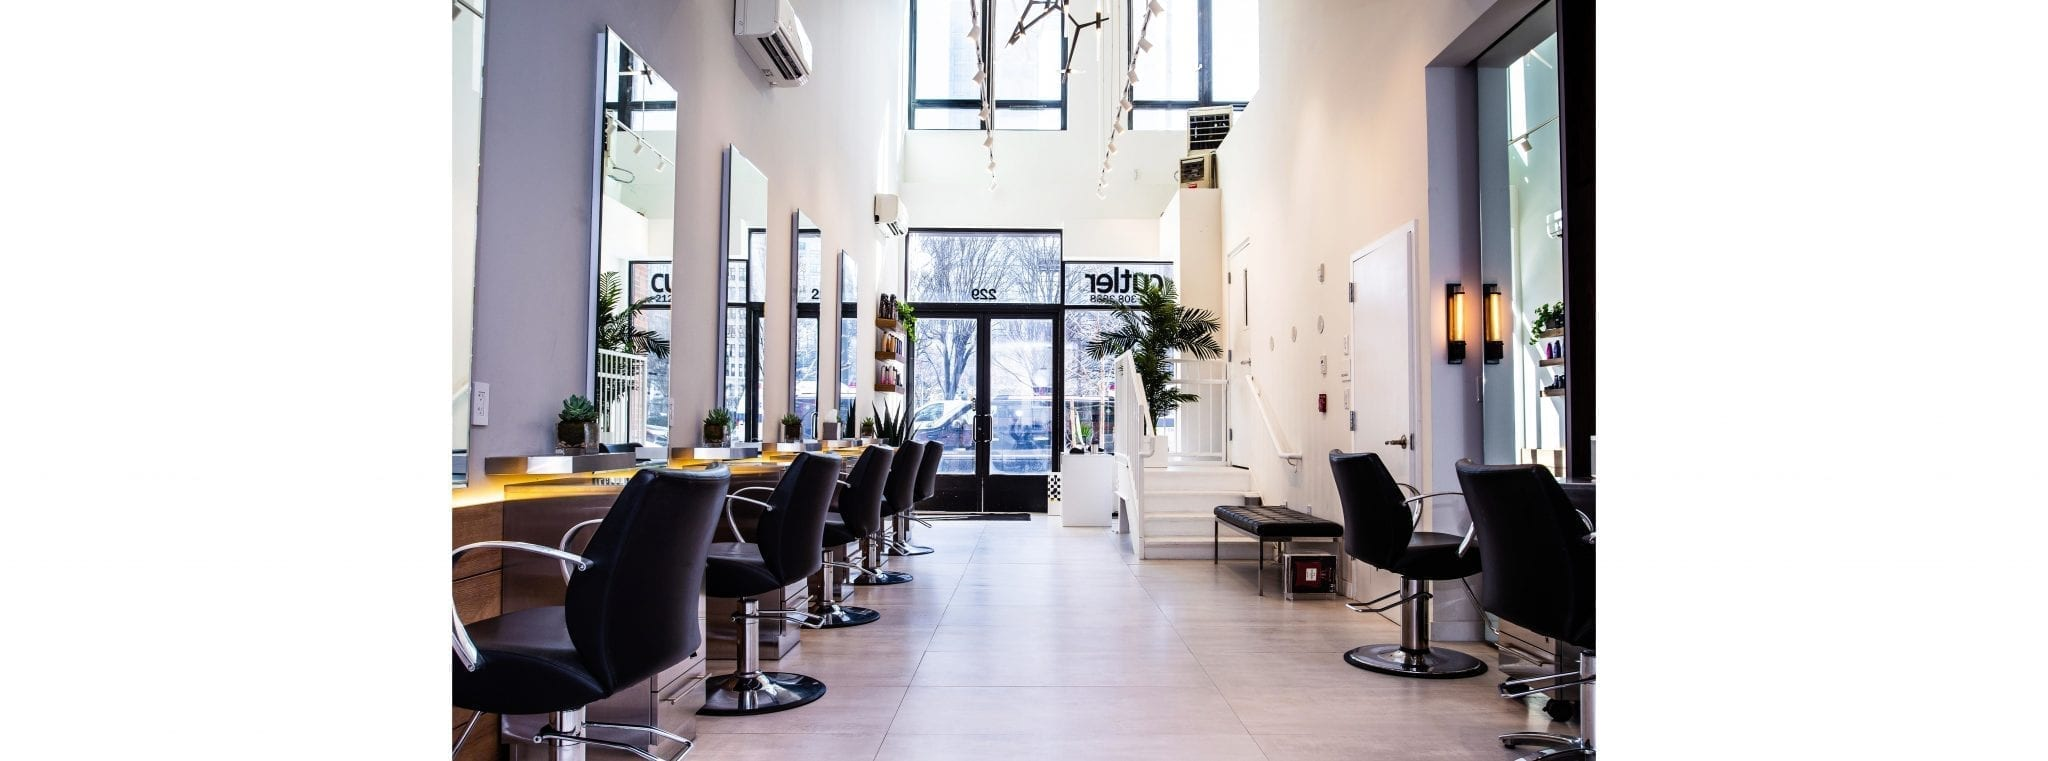 Interior of Cutler Salon in NYC with clean white walls large windows and salon stations neatly lined up on the sides